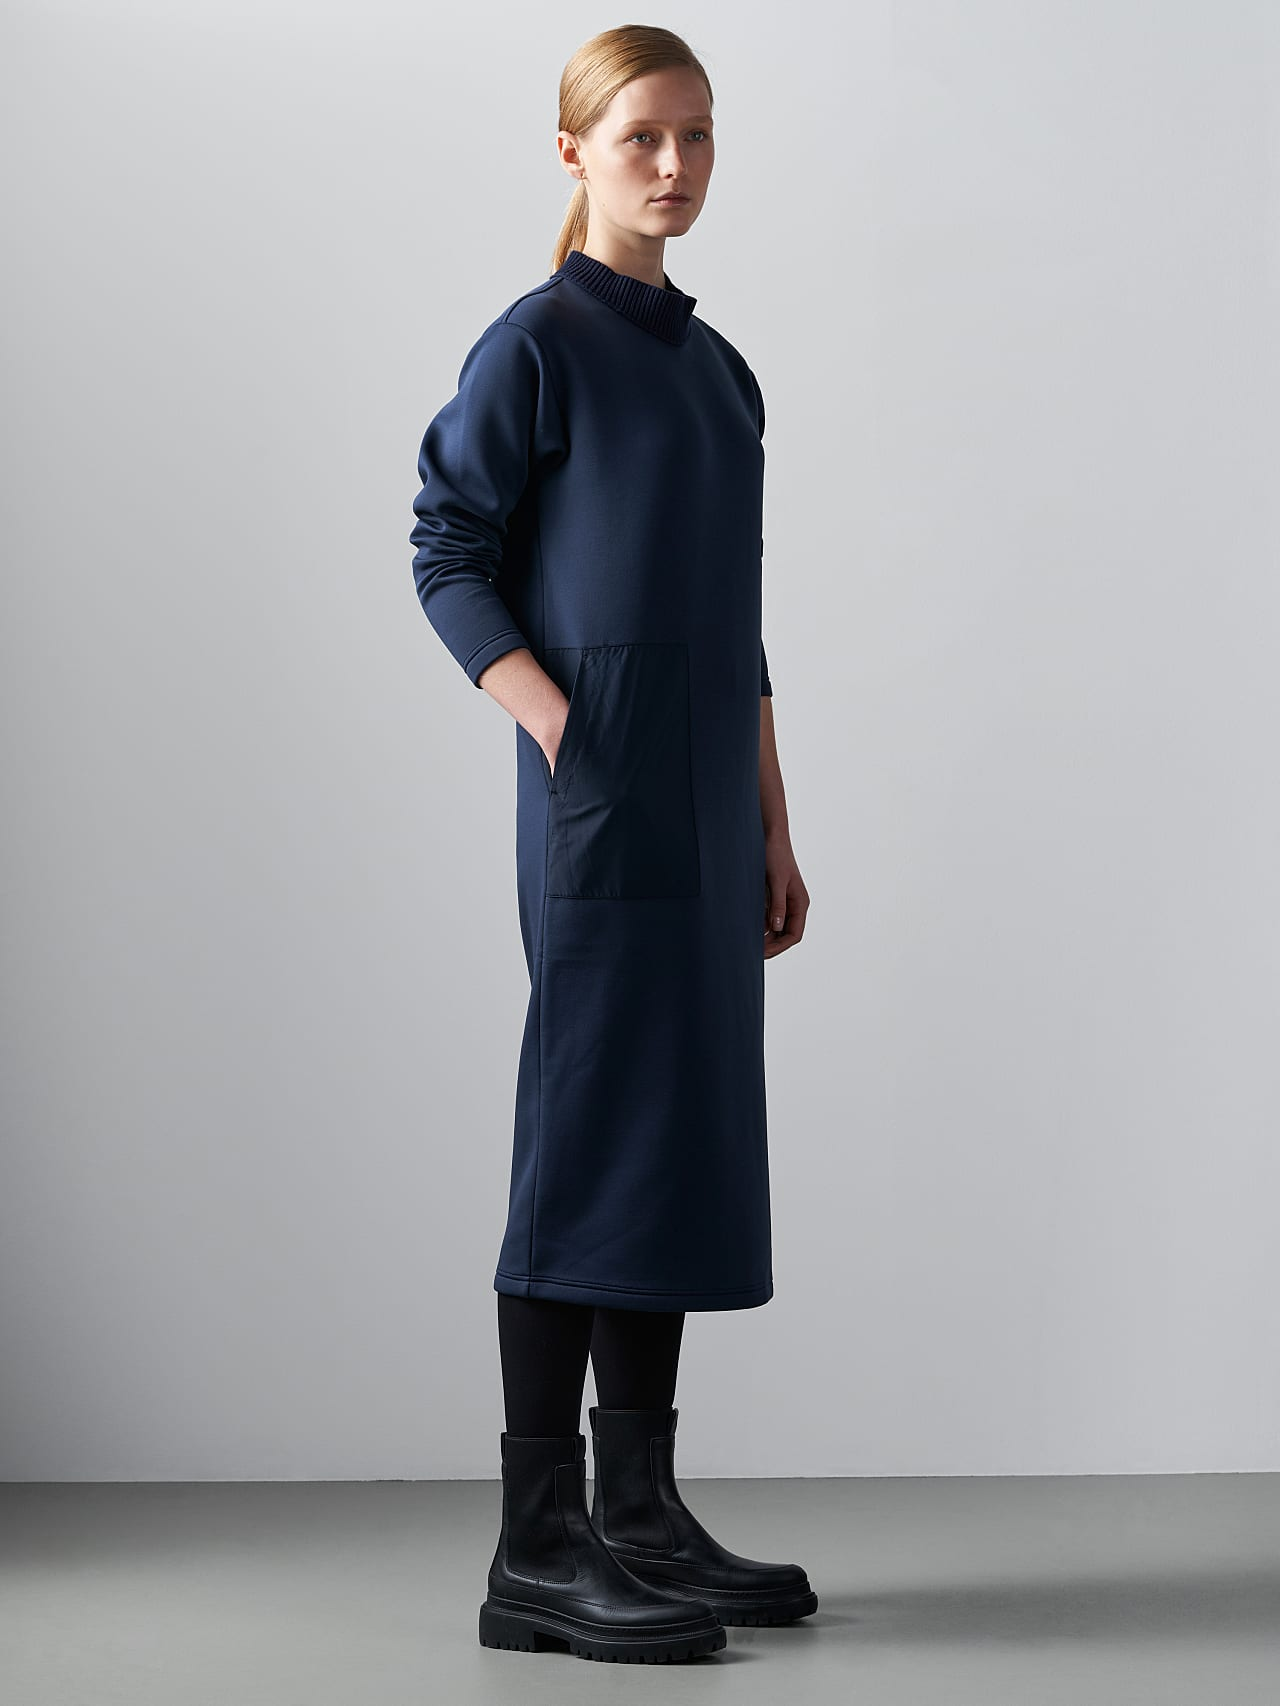 SINLE V1.Y5.02 Technical Spacer Maxi Dress navy Front Alpha Tauri